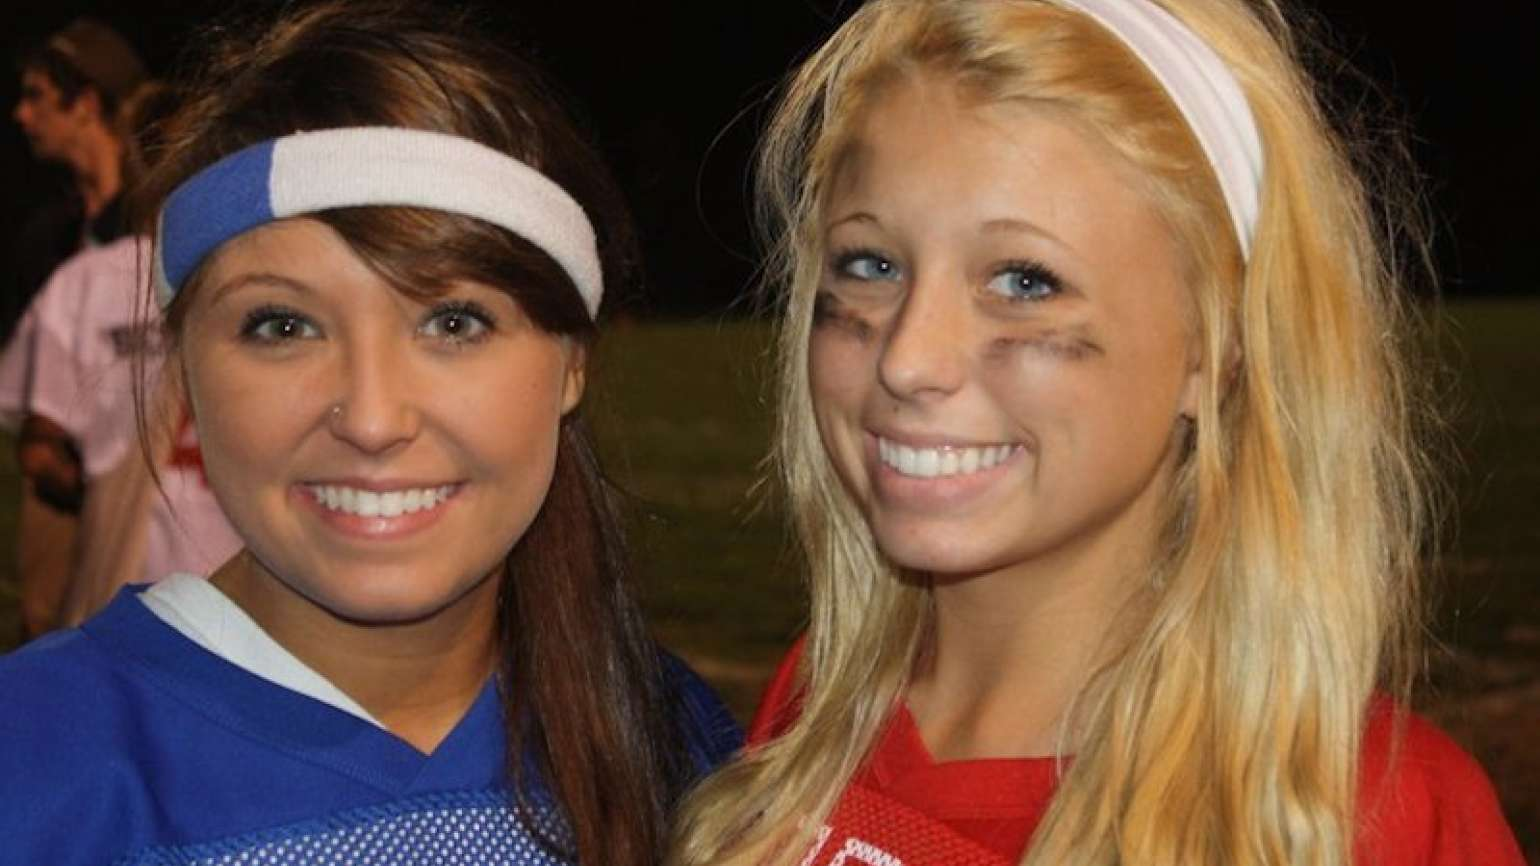 Michelle Adams's daughters in a Kodak moment at powder puff football game.